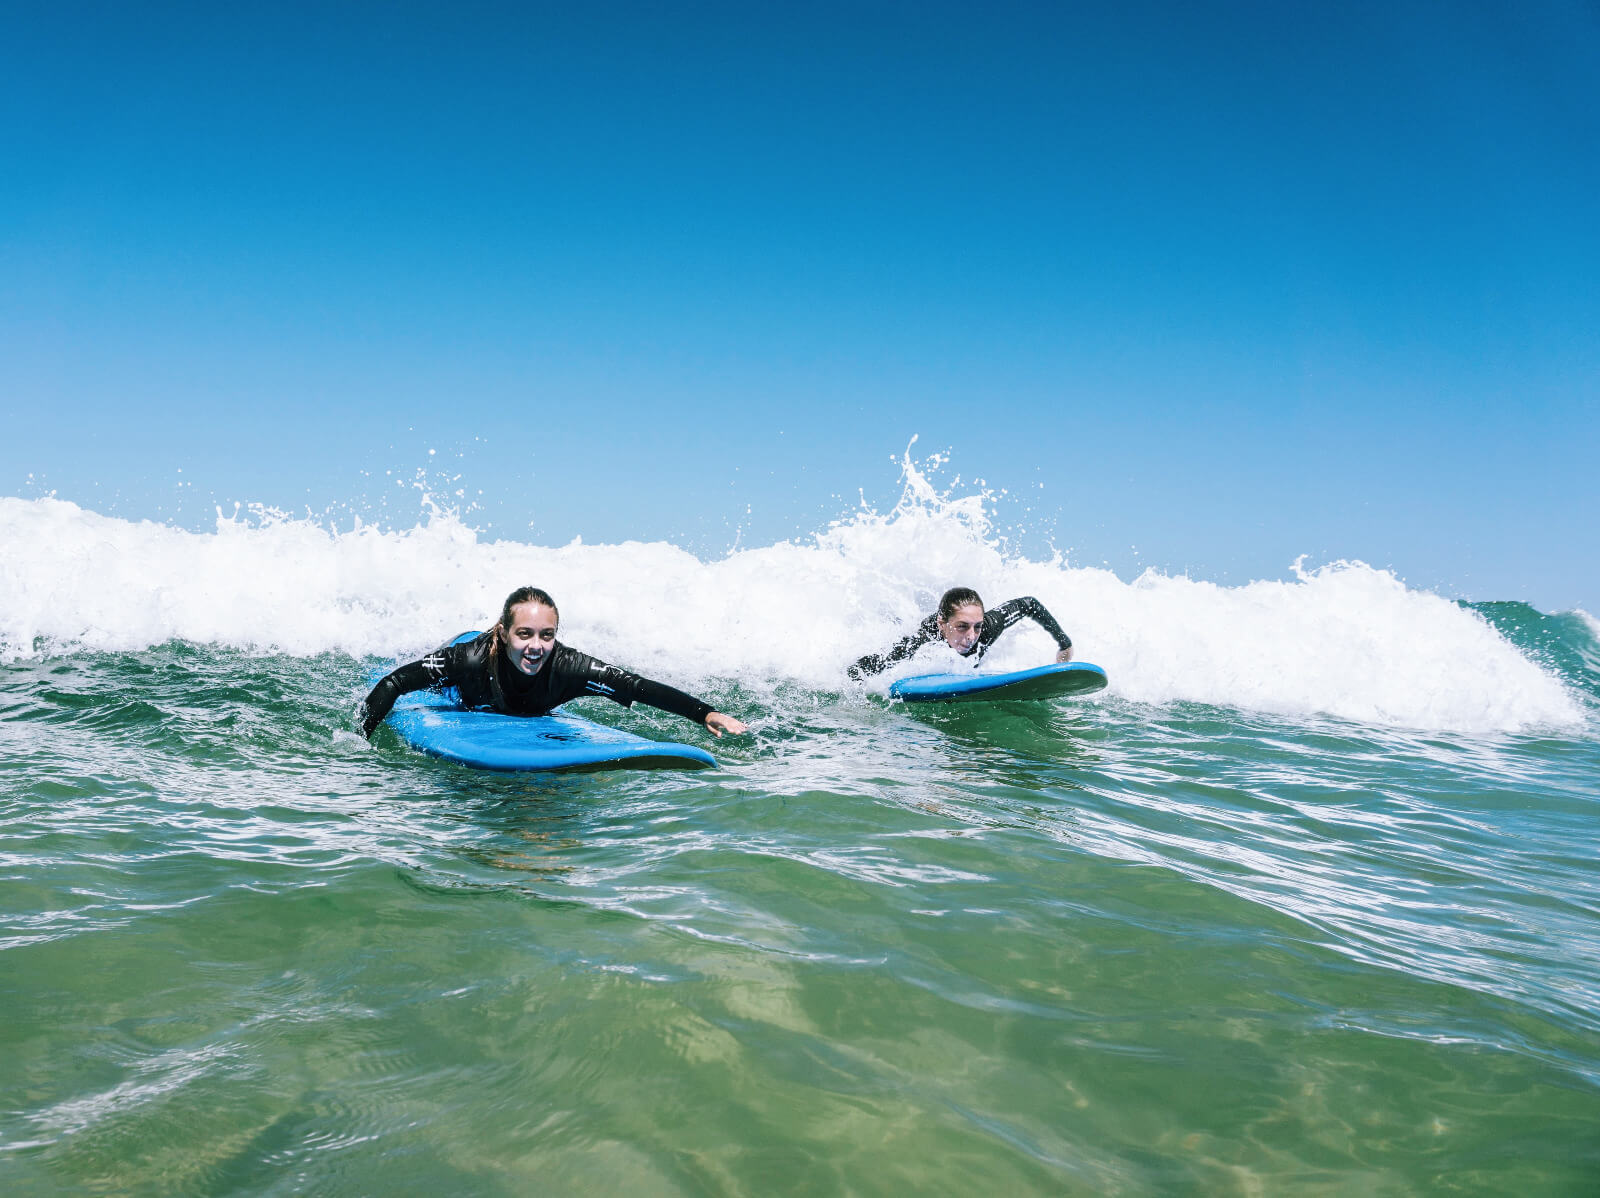 Two girls surfing